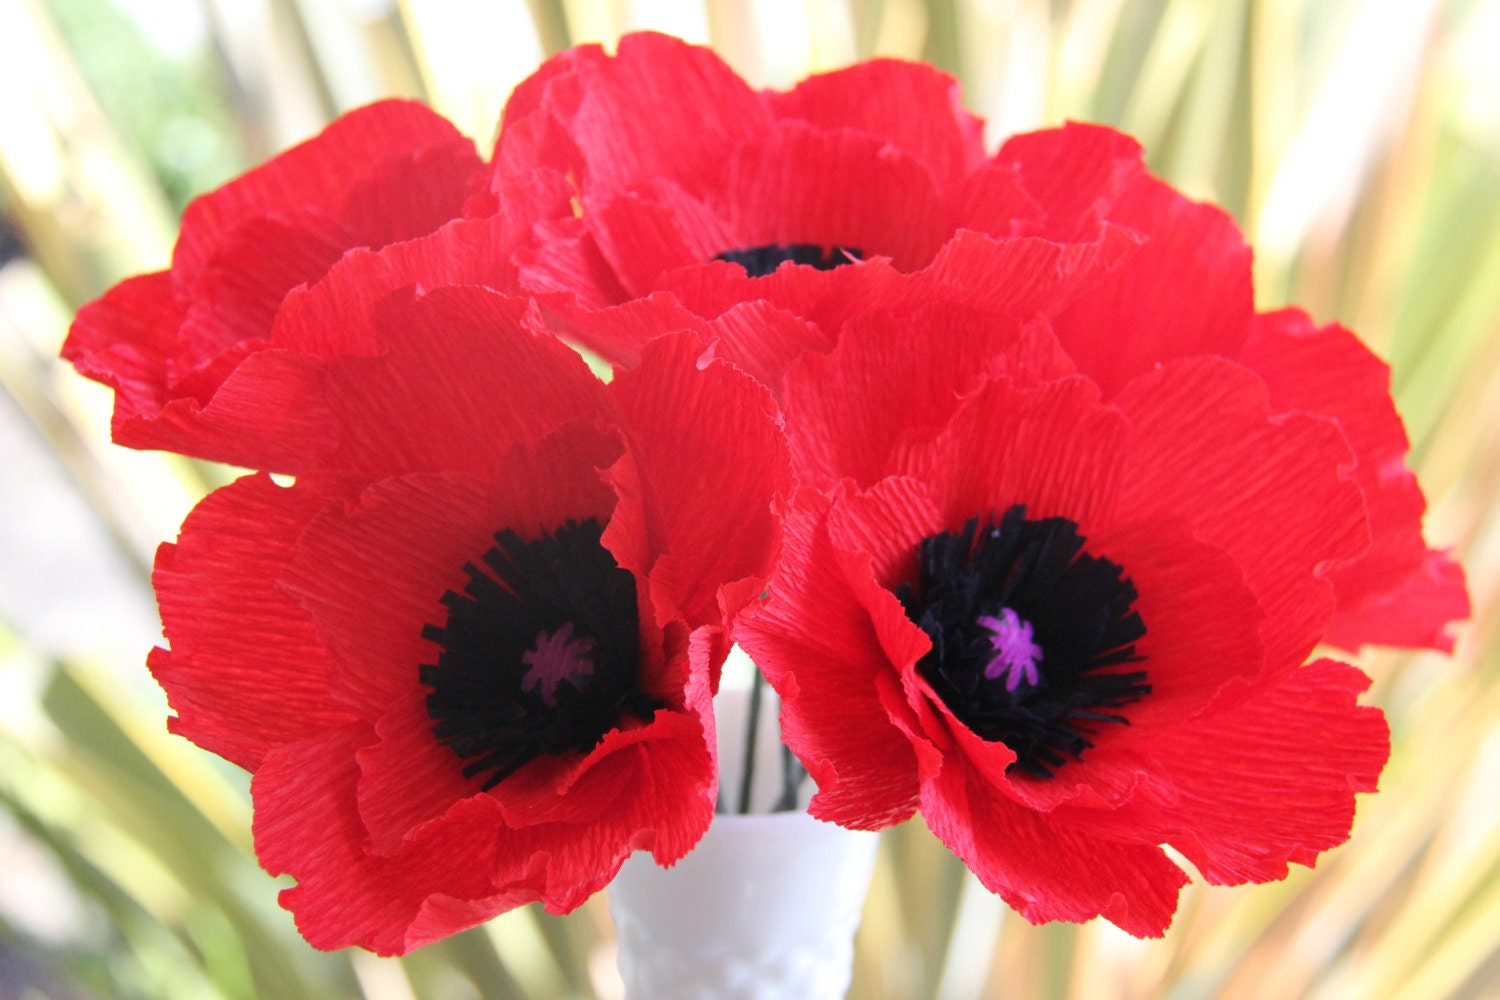 Poppy Flowers For Sale Images Fresh Lotus Flowers